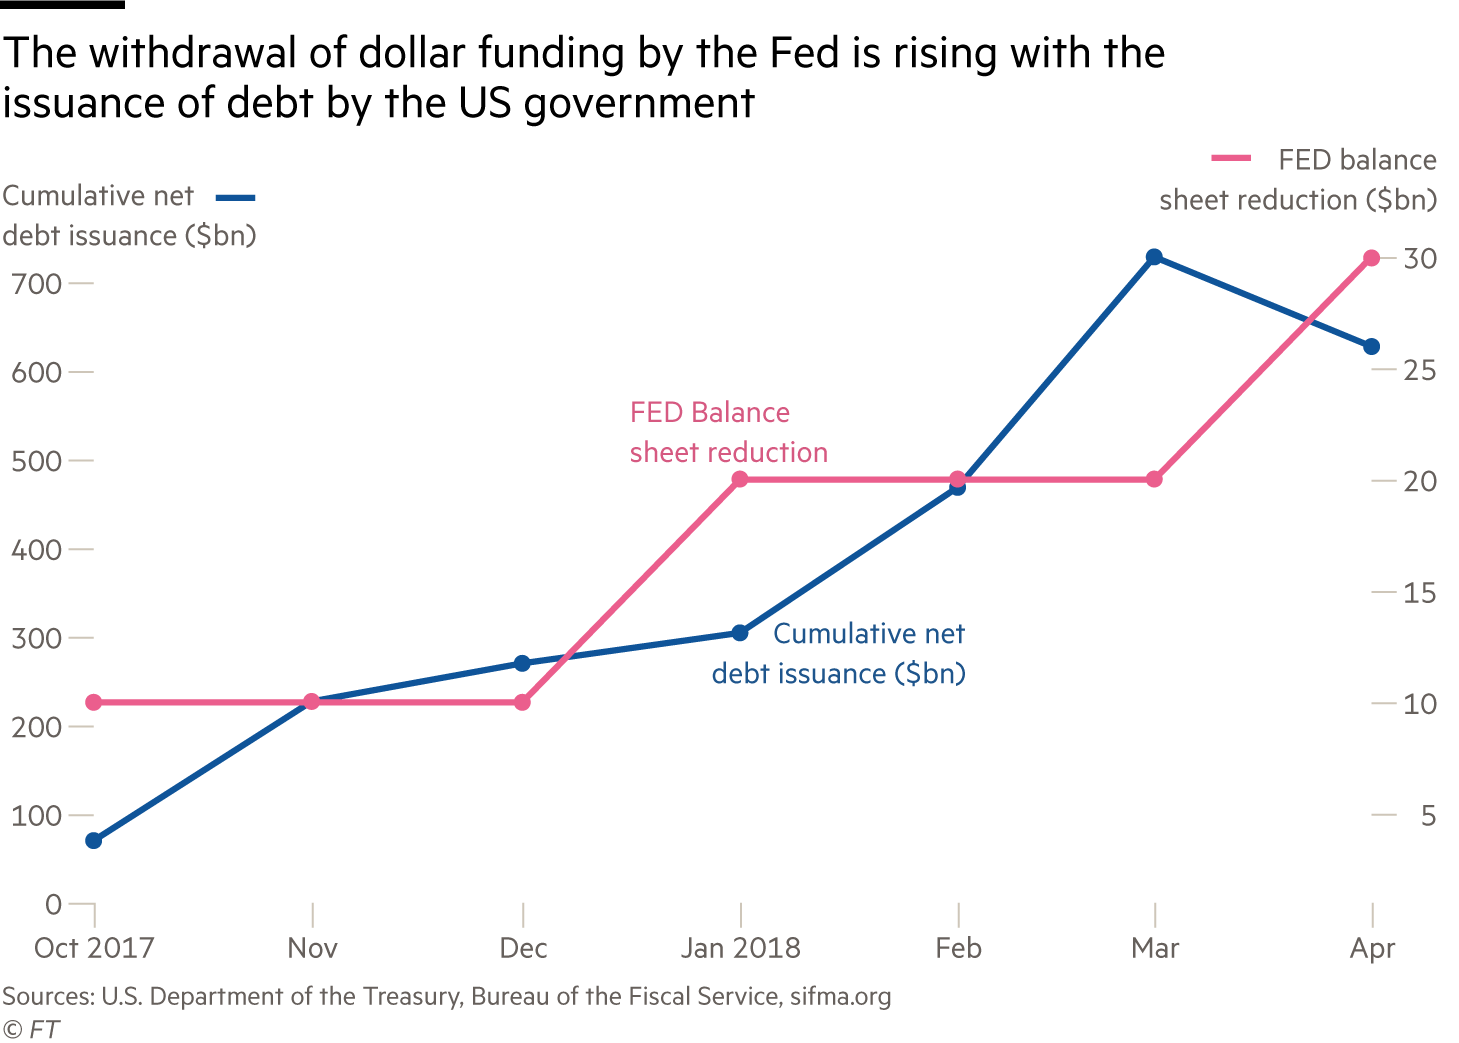 Chart showing correlation between US debt issuance and Fed balance sheet reduction